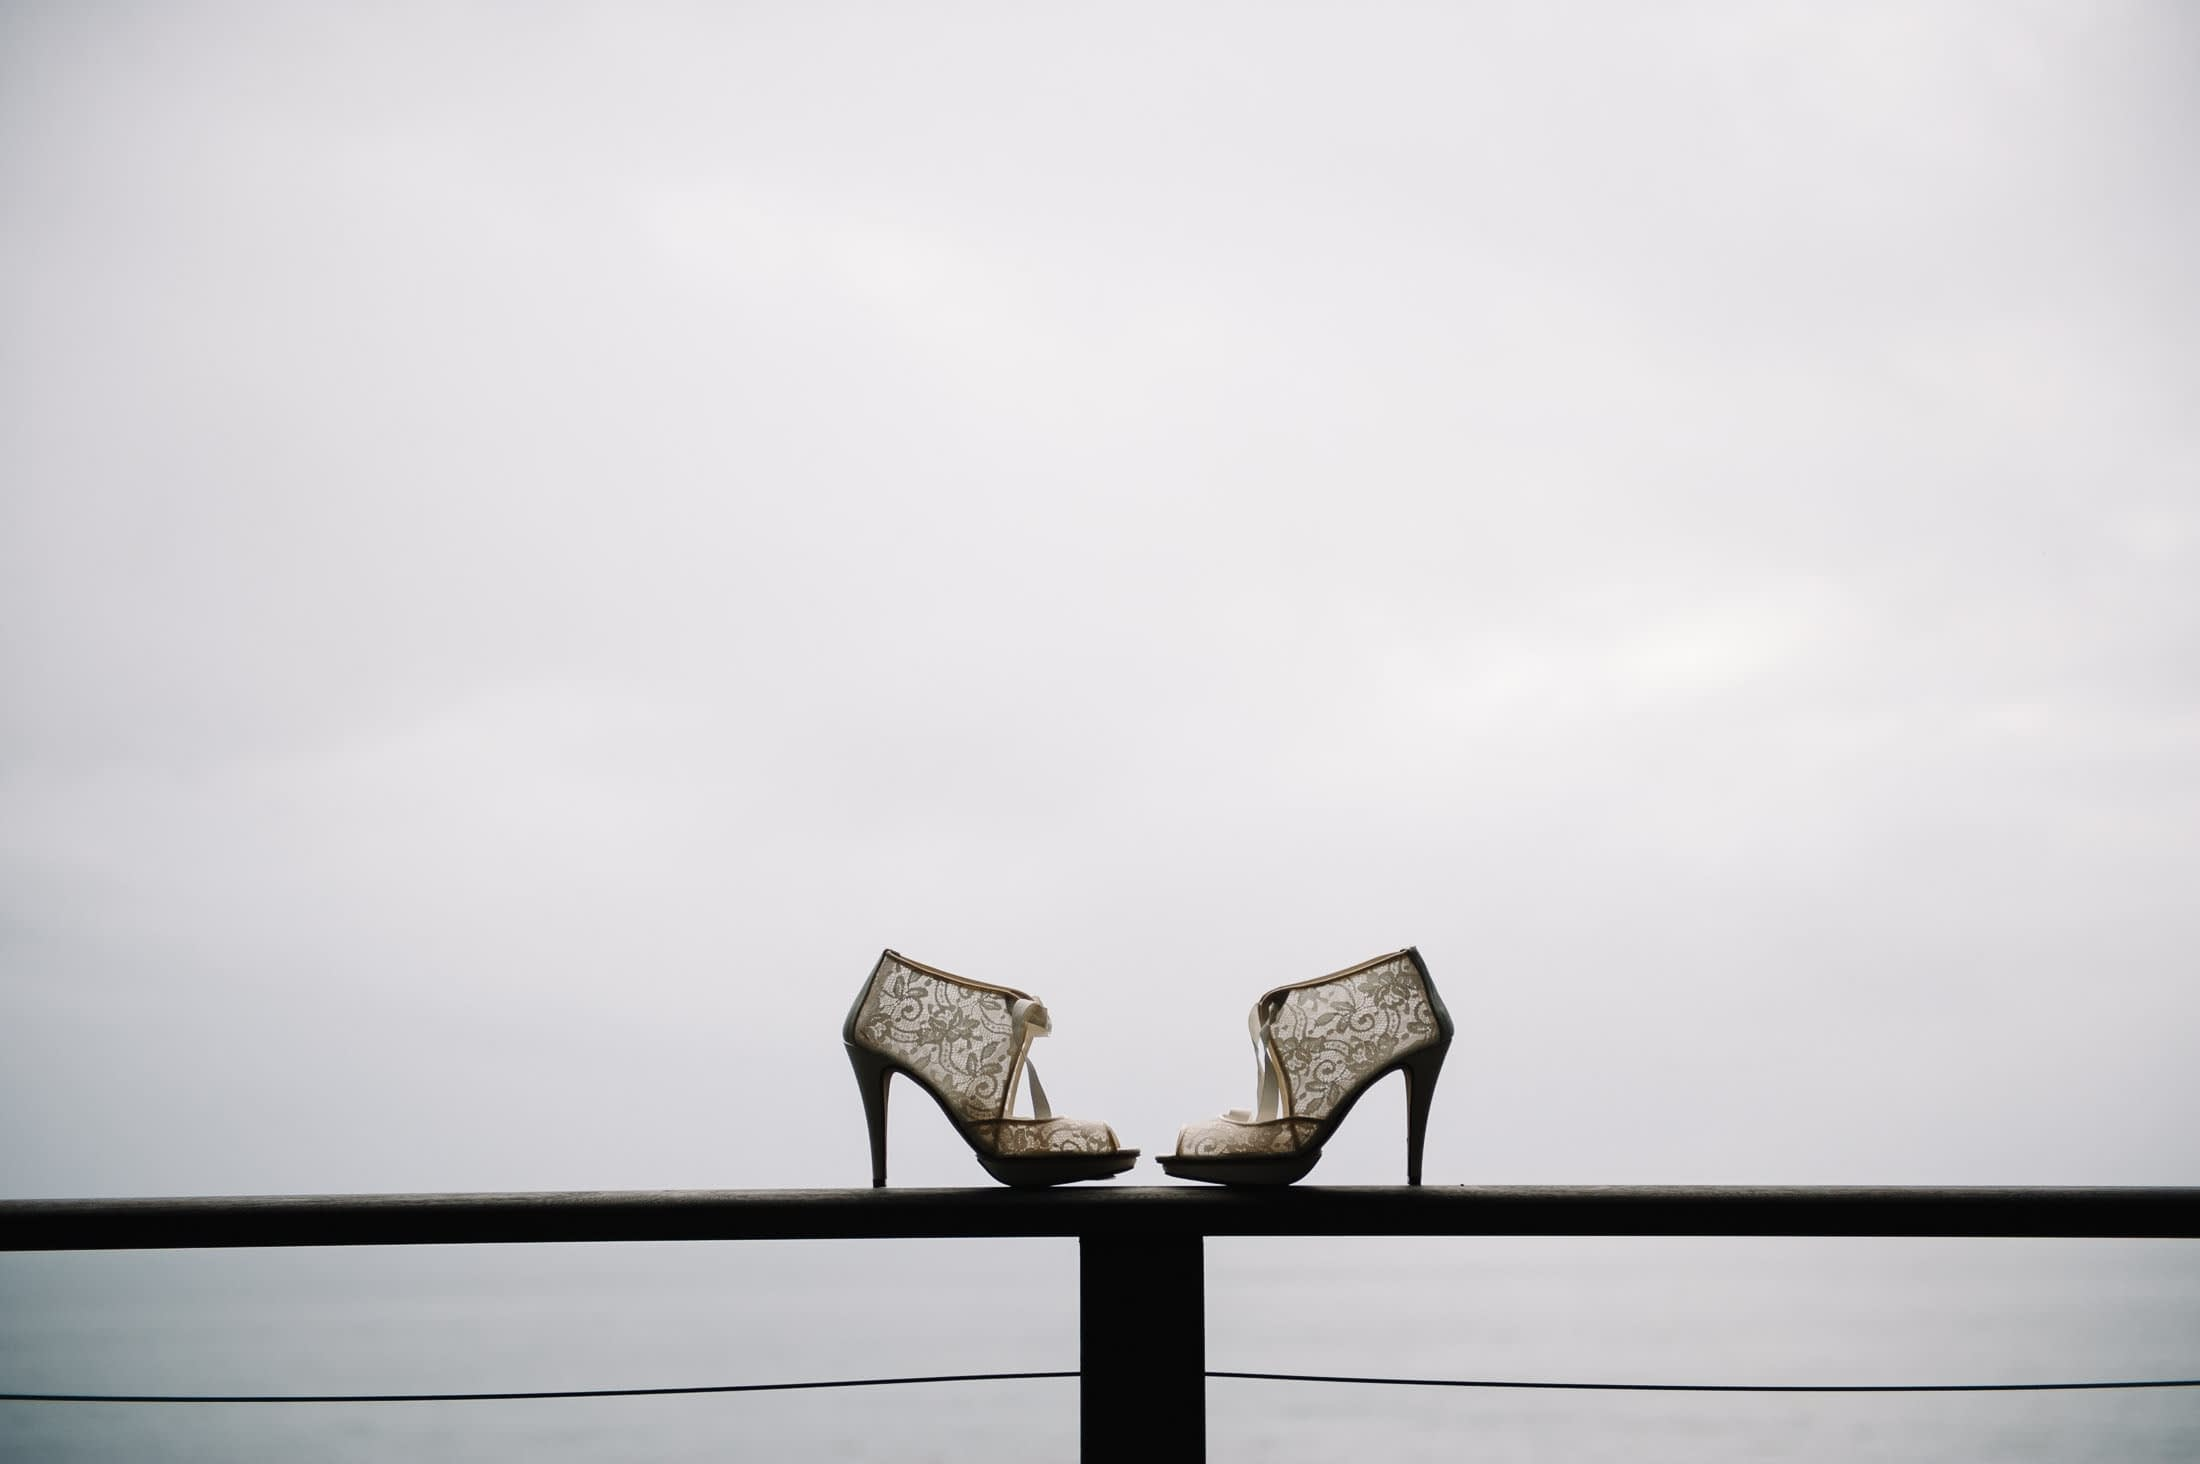 Artistic shoe detail from Wind and Sea Wedding